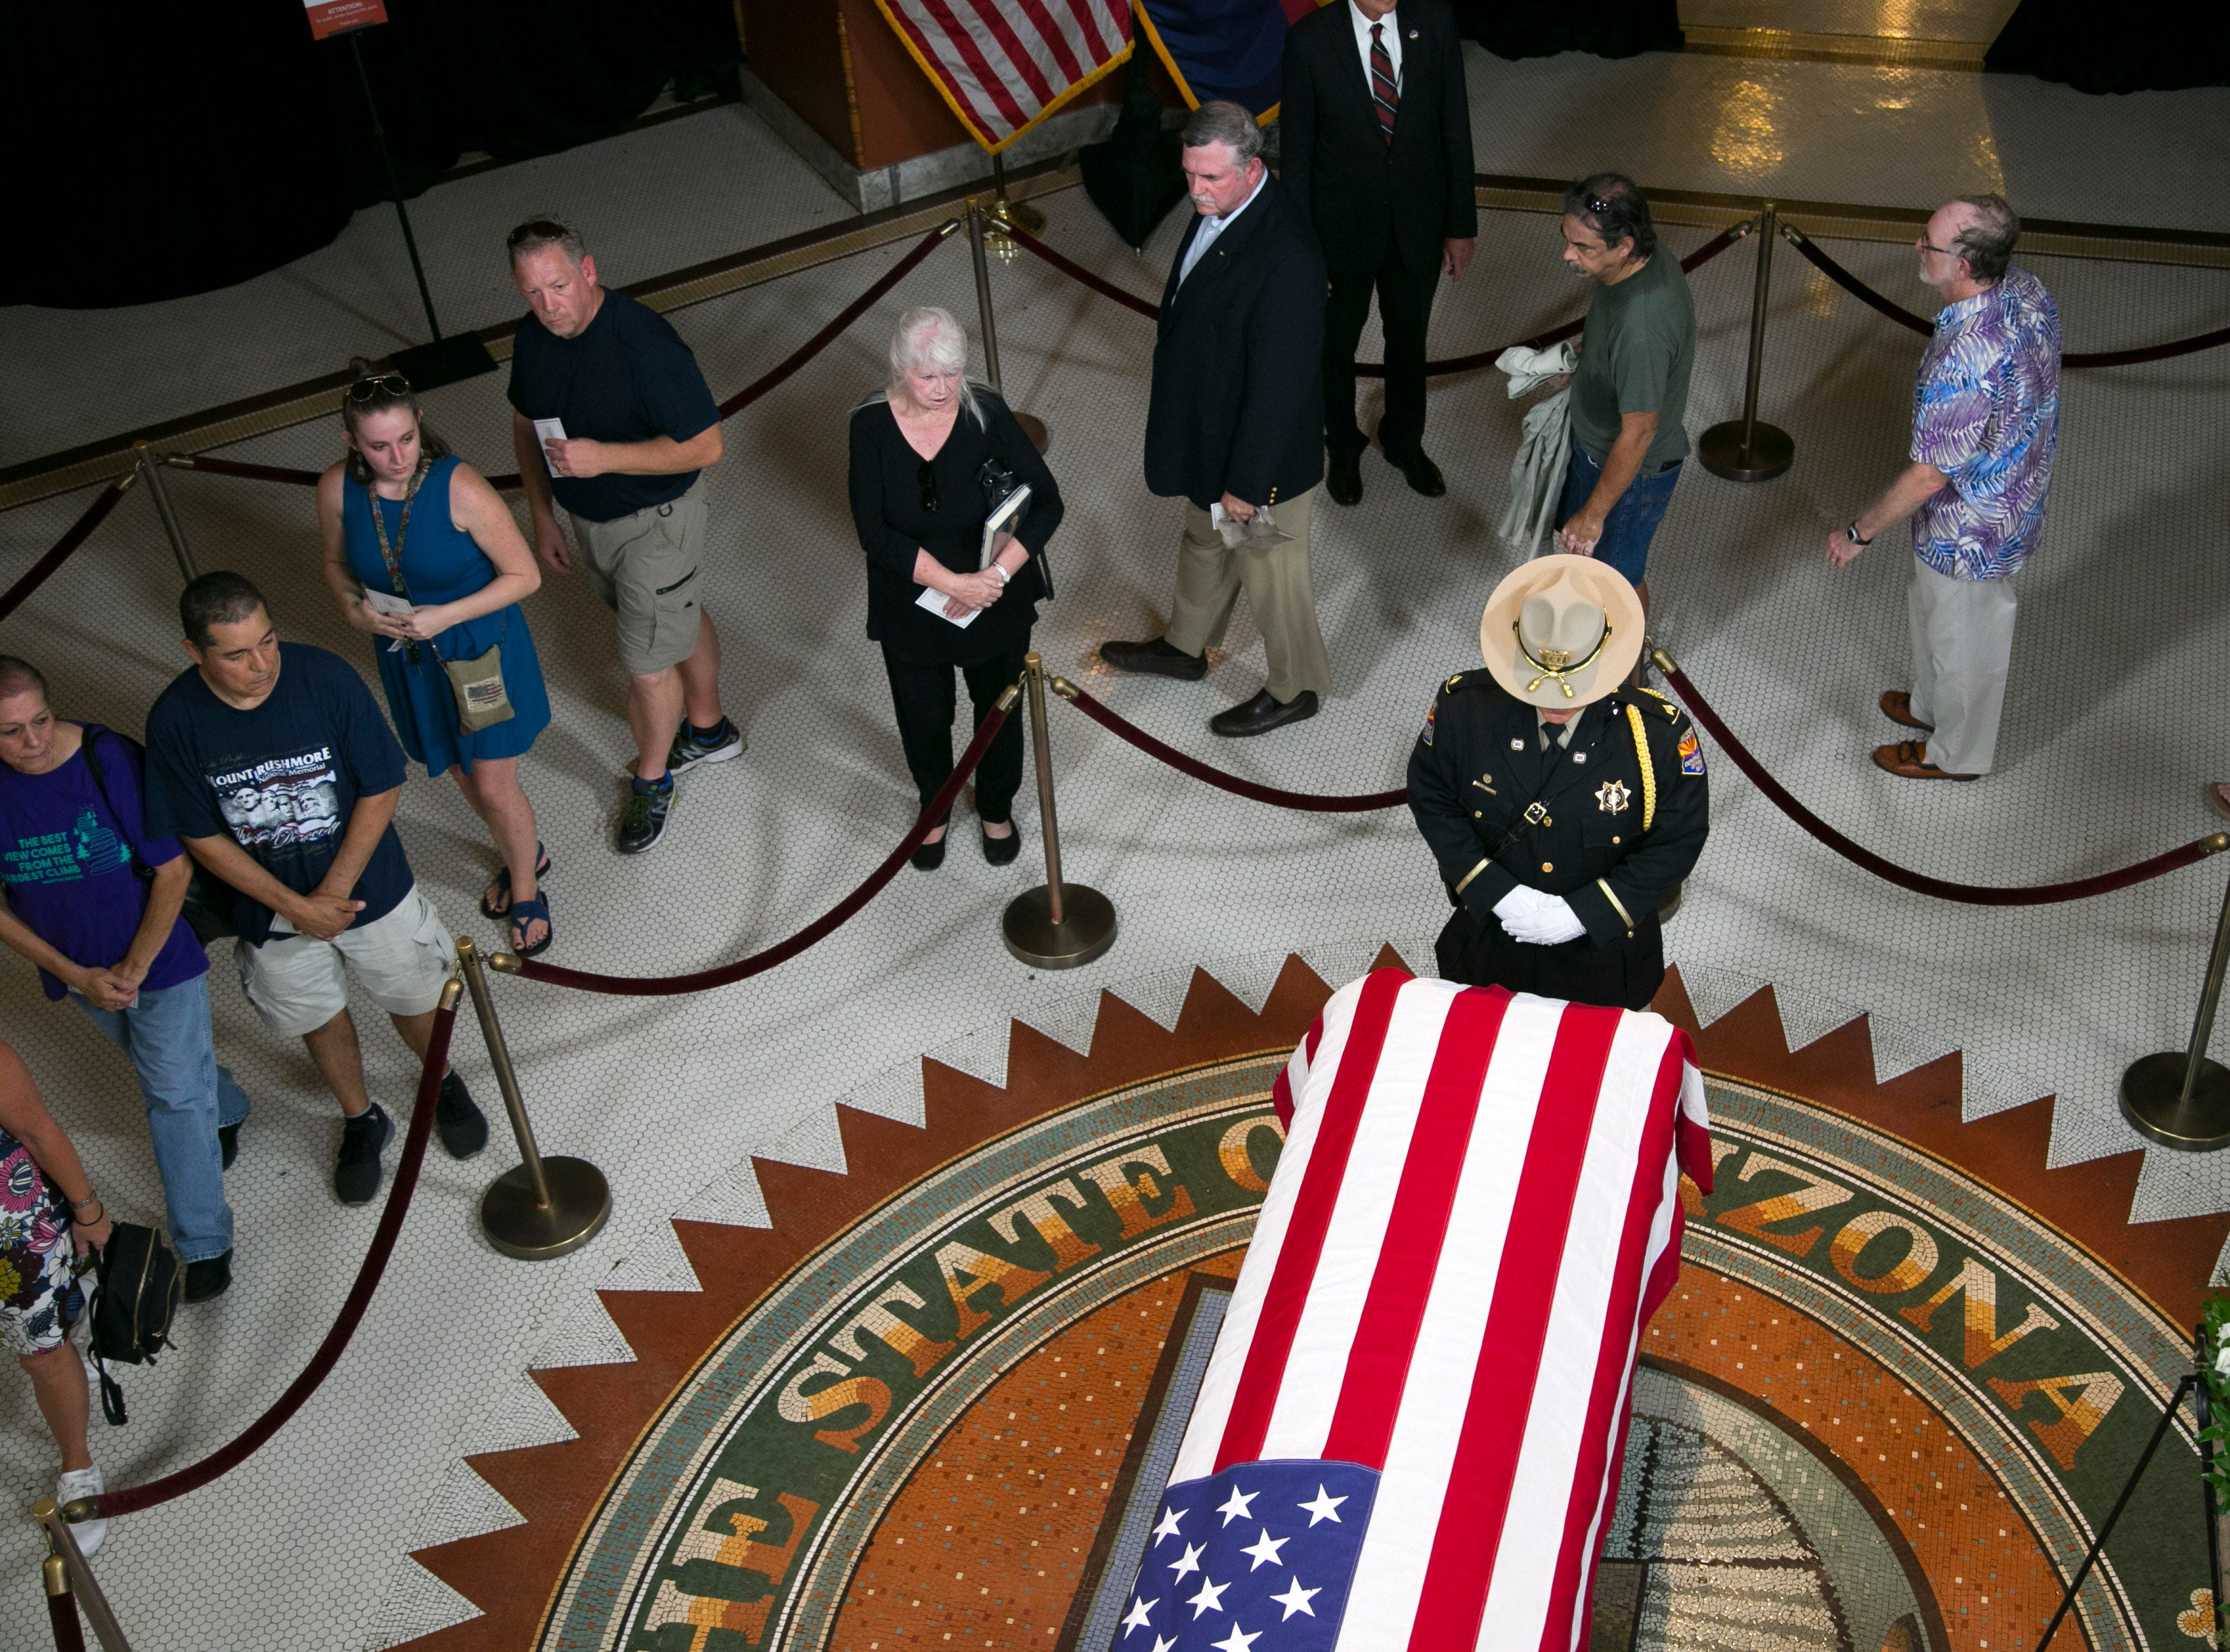 People pay their respects as Senator John McCain lies in state in the state capitol in Phoenix on Wednesday, August 29, 2018.